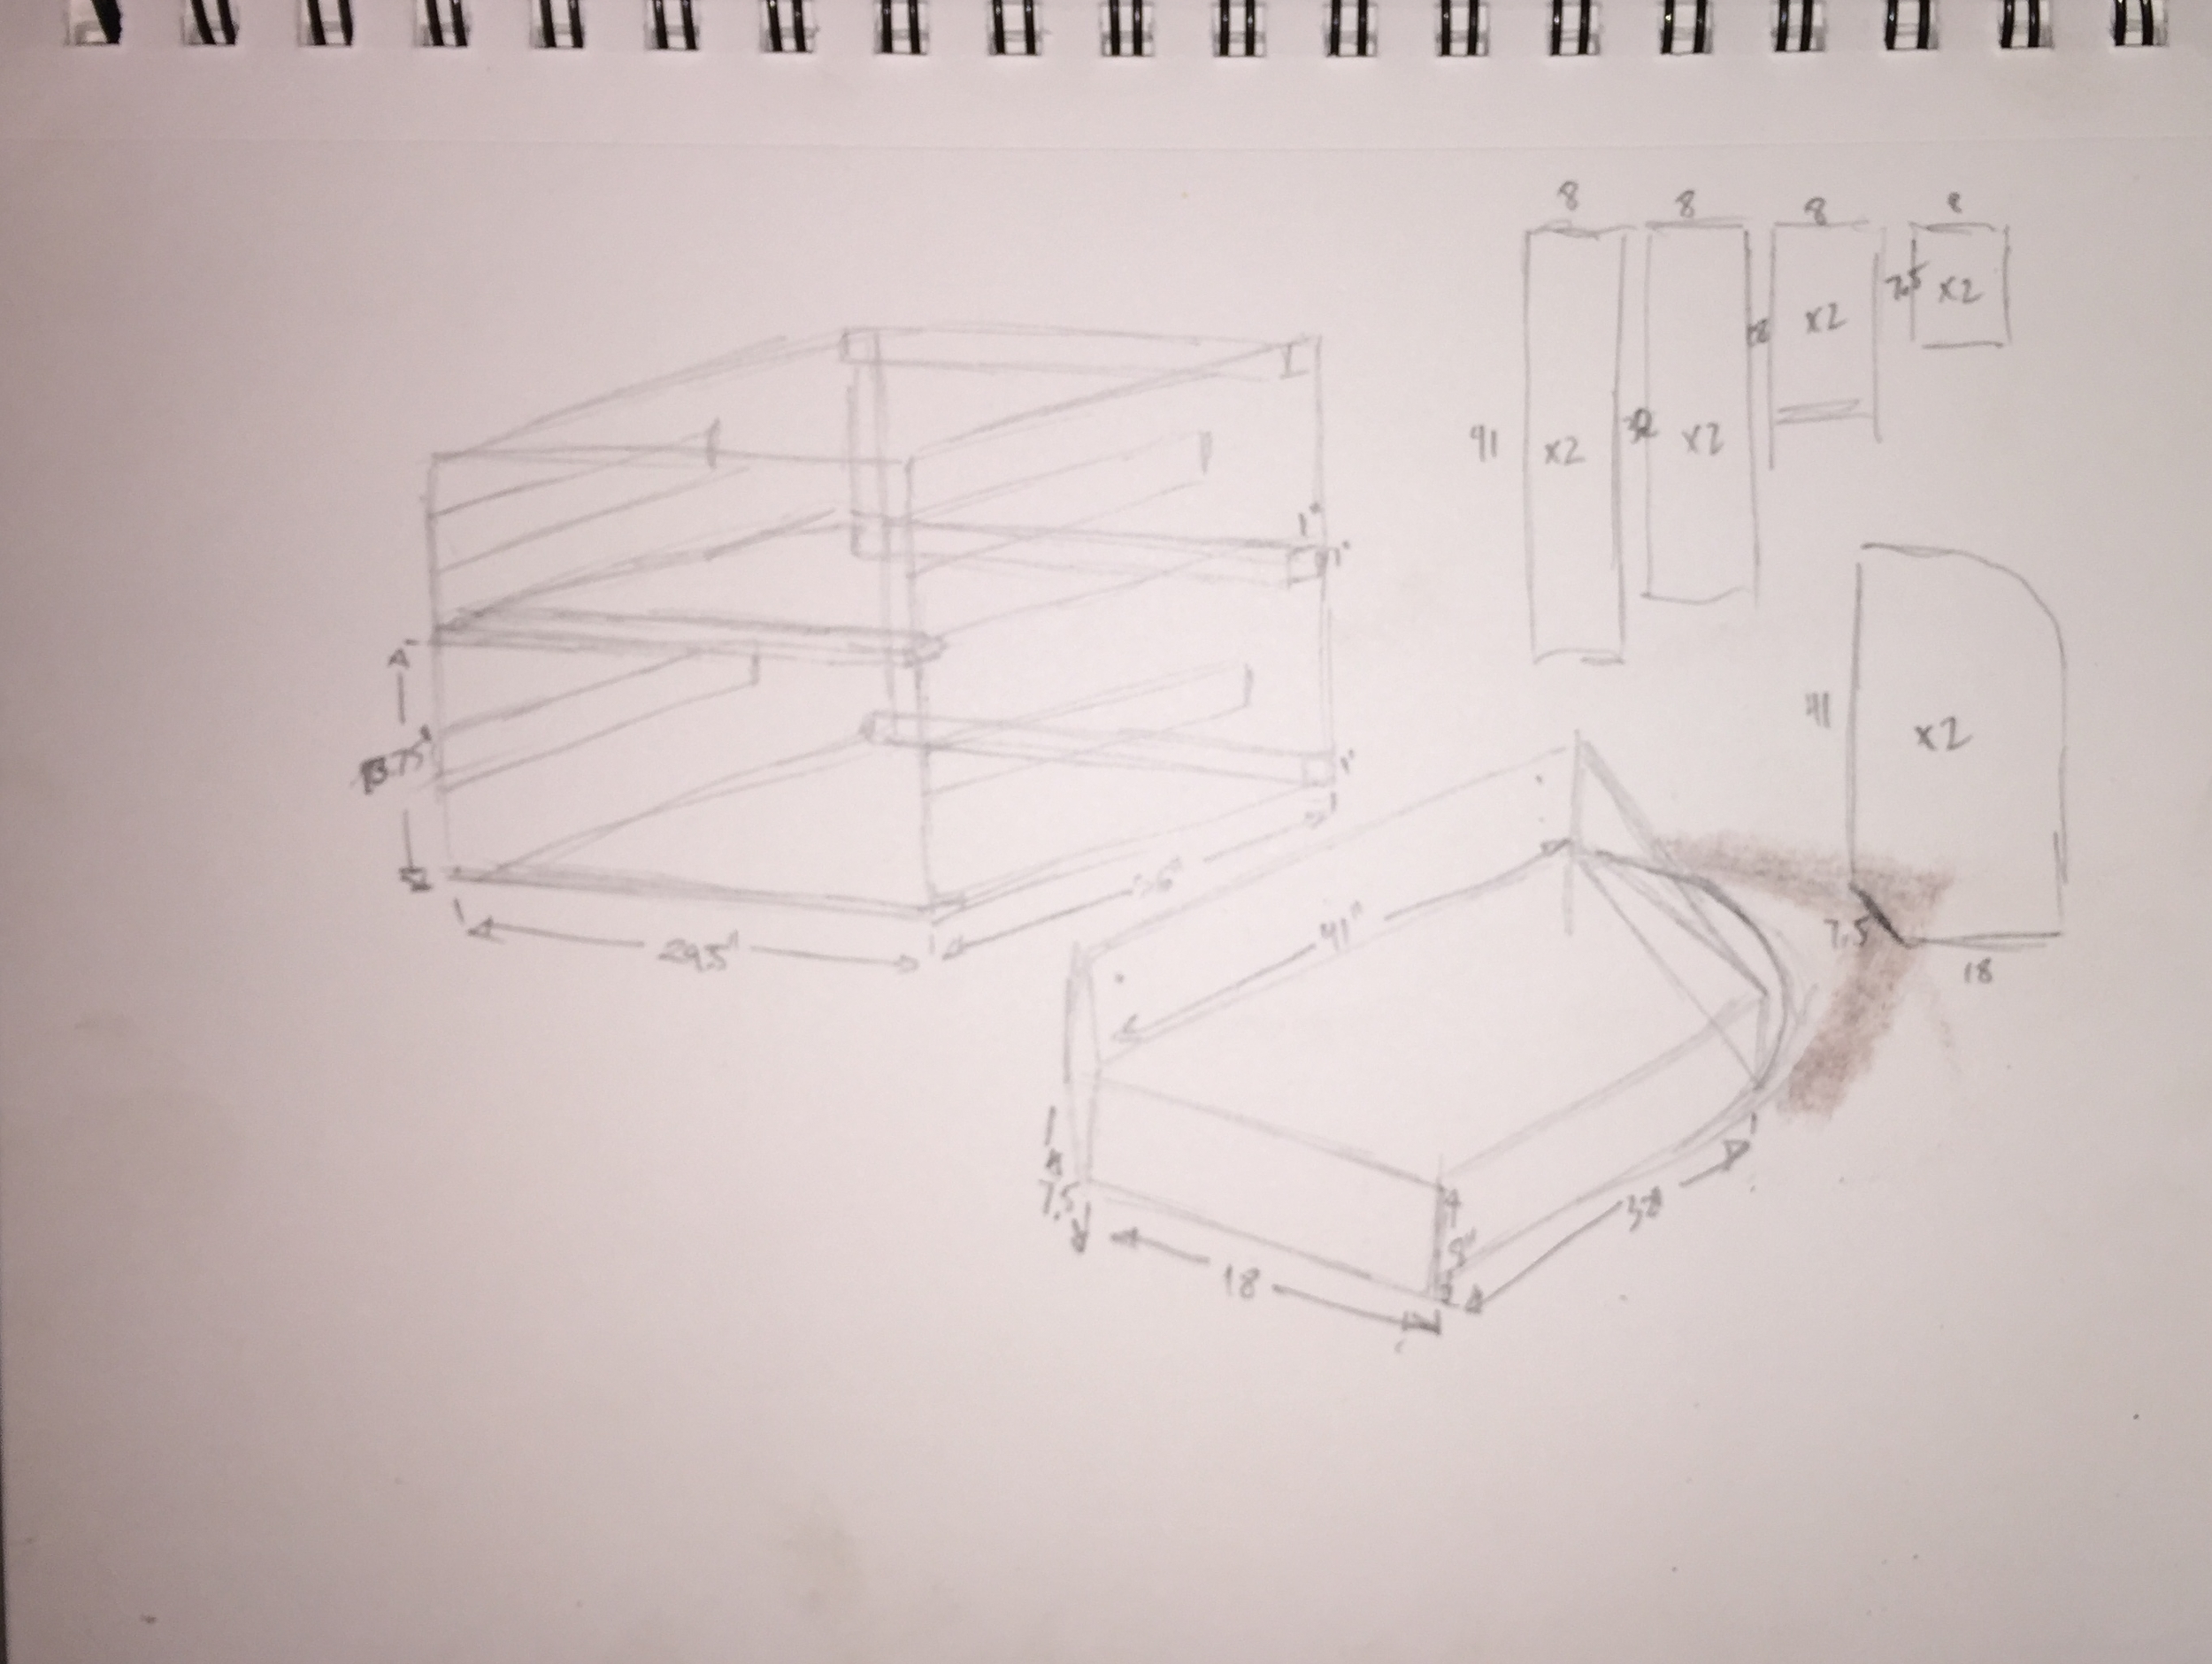 basic plans for the drawer system and under-bed storage